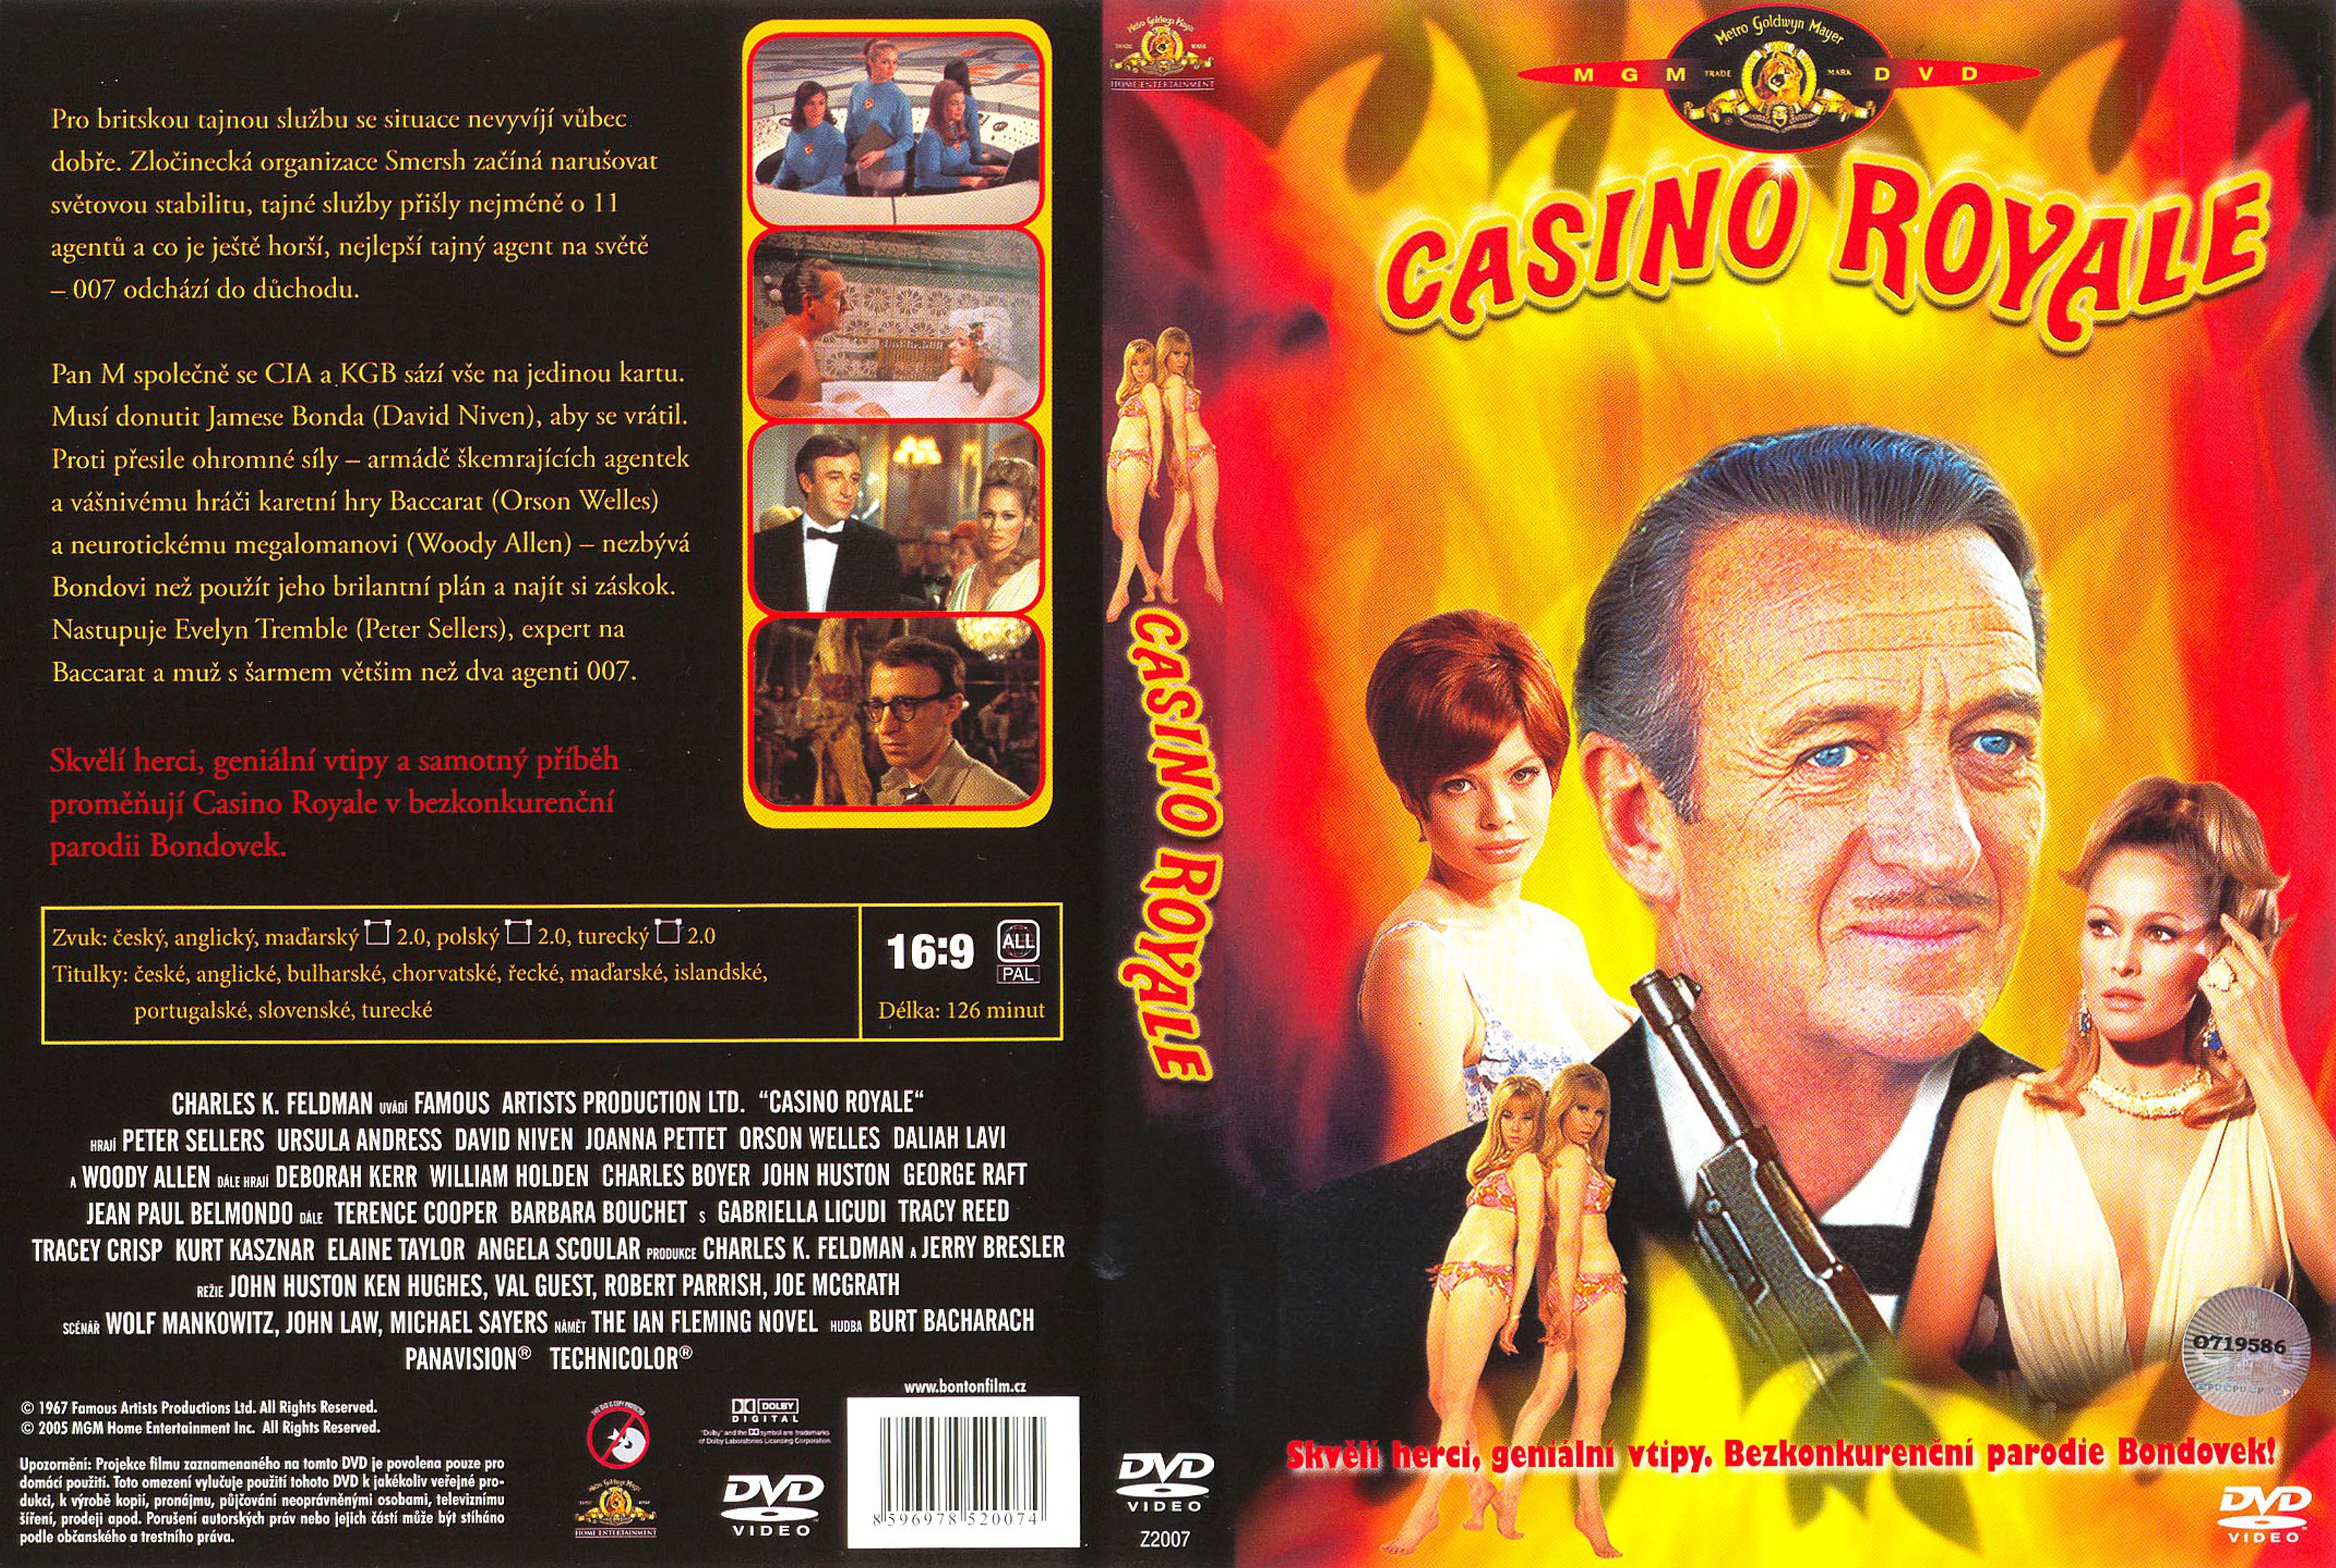 Casino royale 1967 dvd blackjack card game 2 player